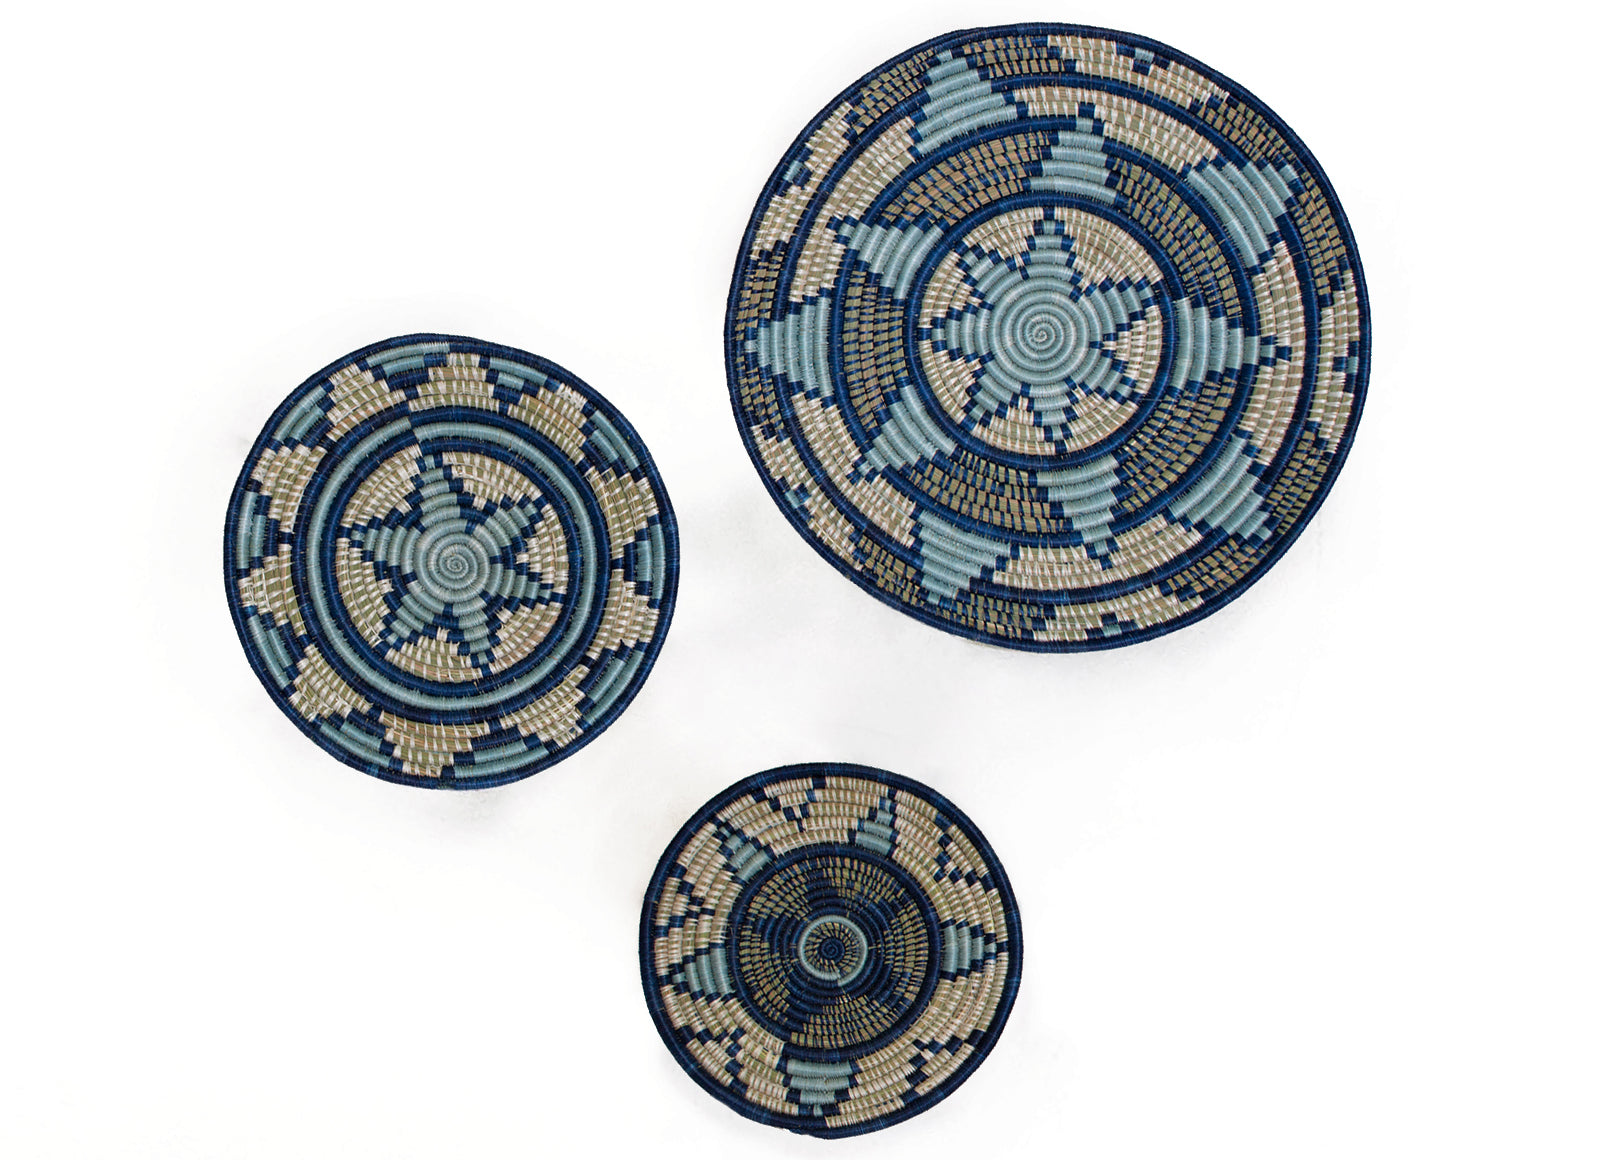 Set of 3 Blue Plates - KAZI - Artisan made high quality home decor and wall art